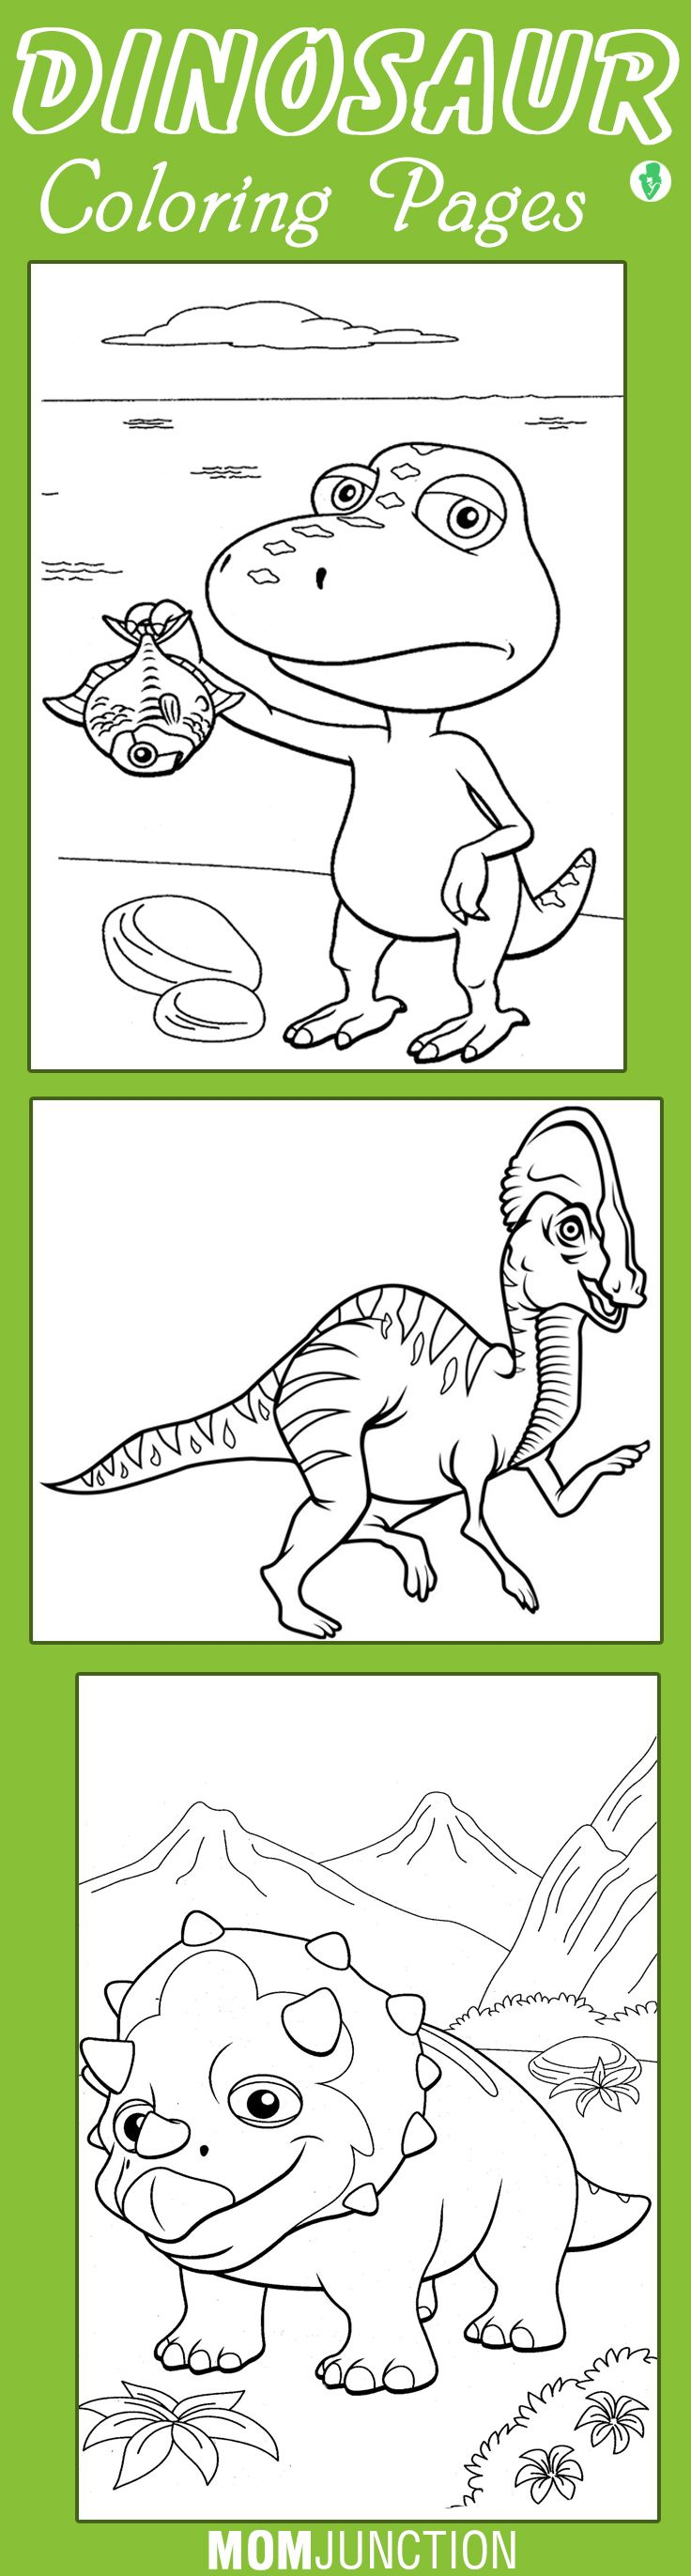 Dinosaurs coloring games online - Top 10 Free Printable Dinosaur Train Coloring Pages Online